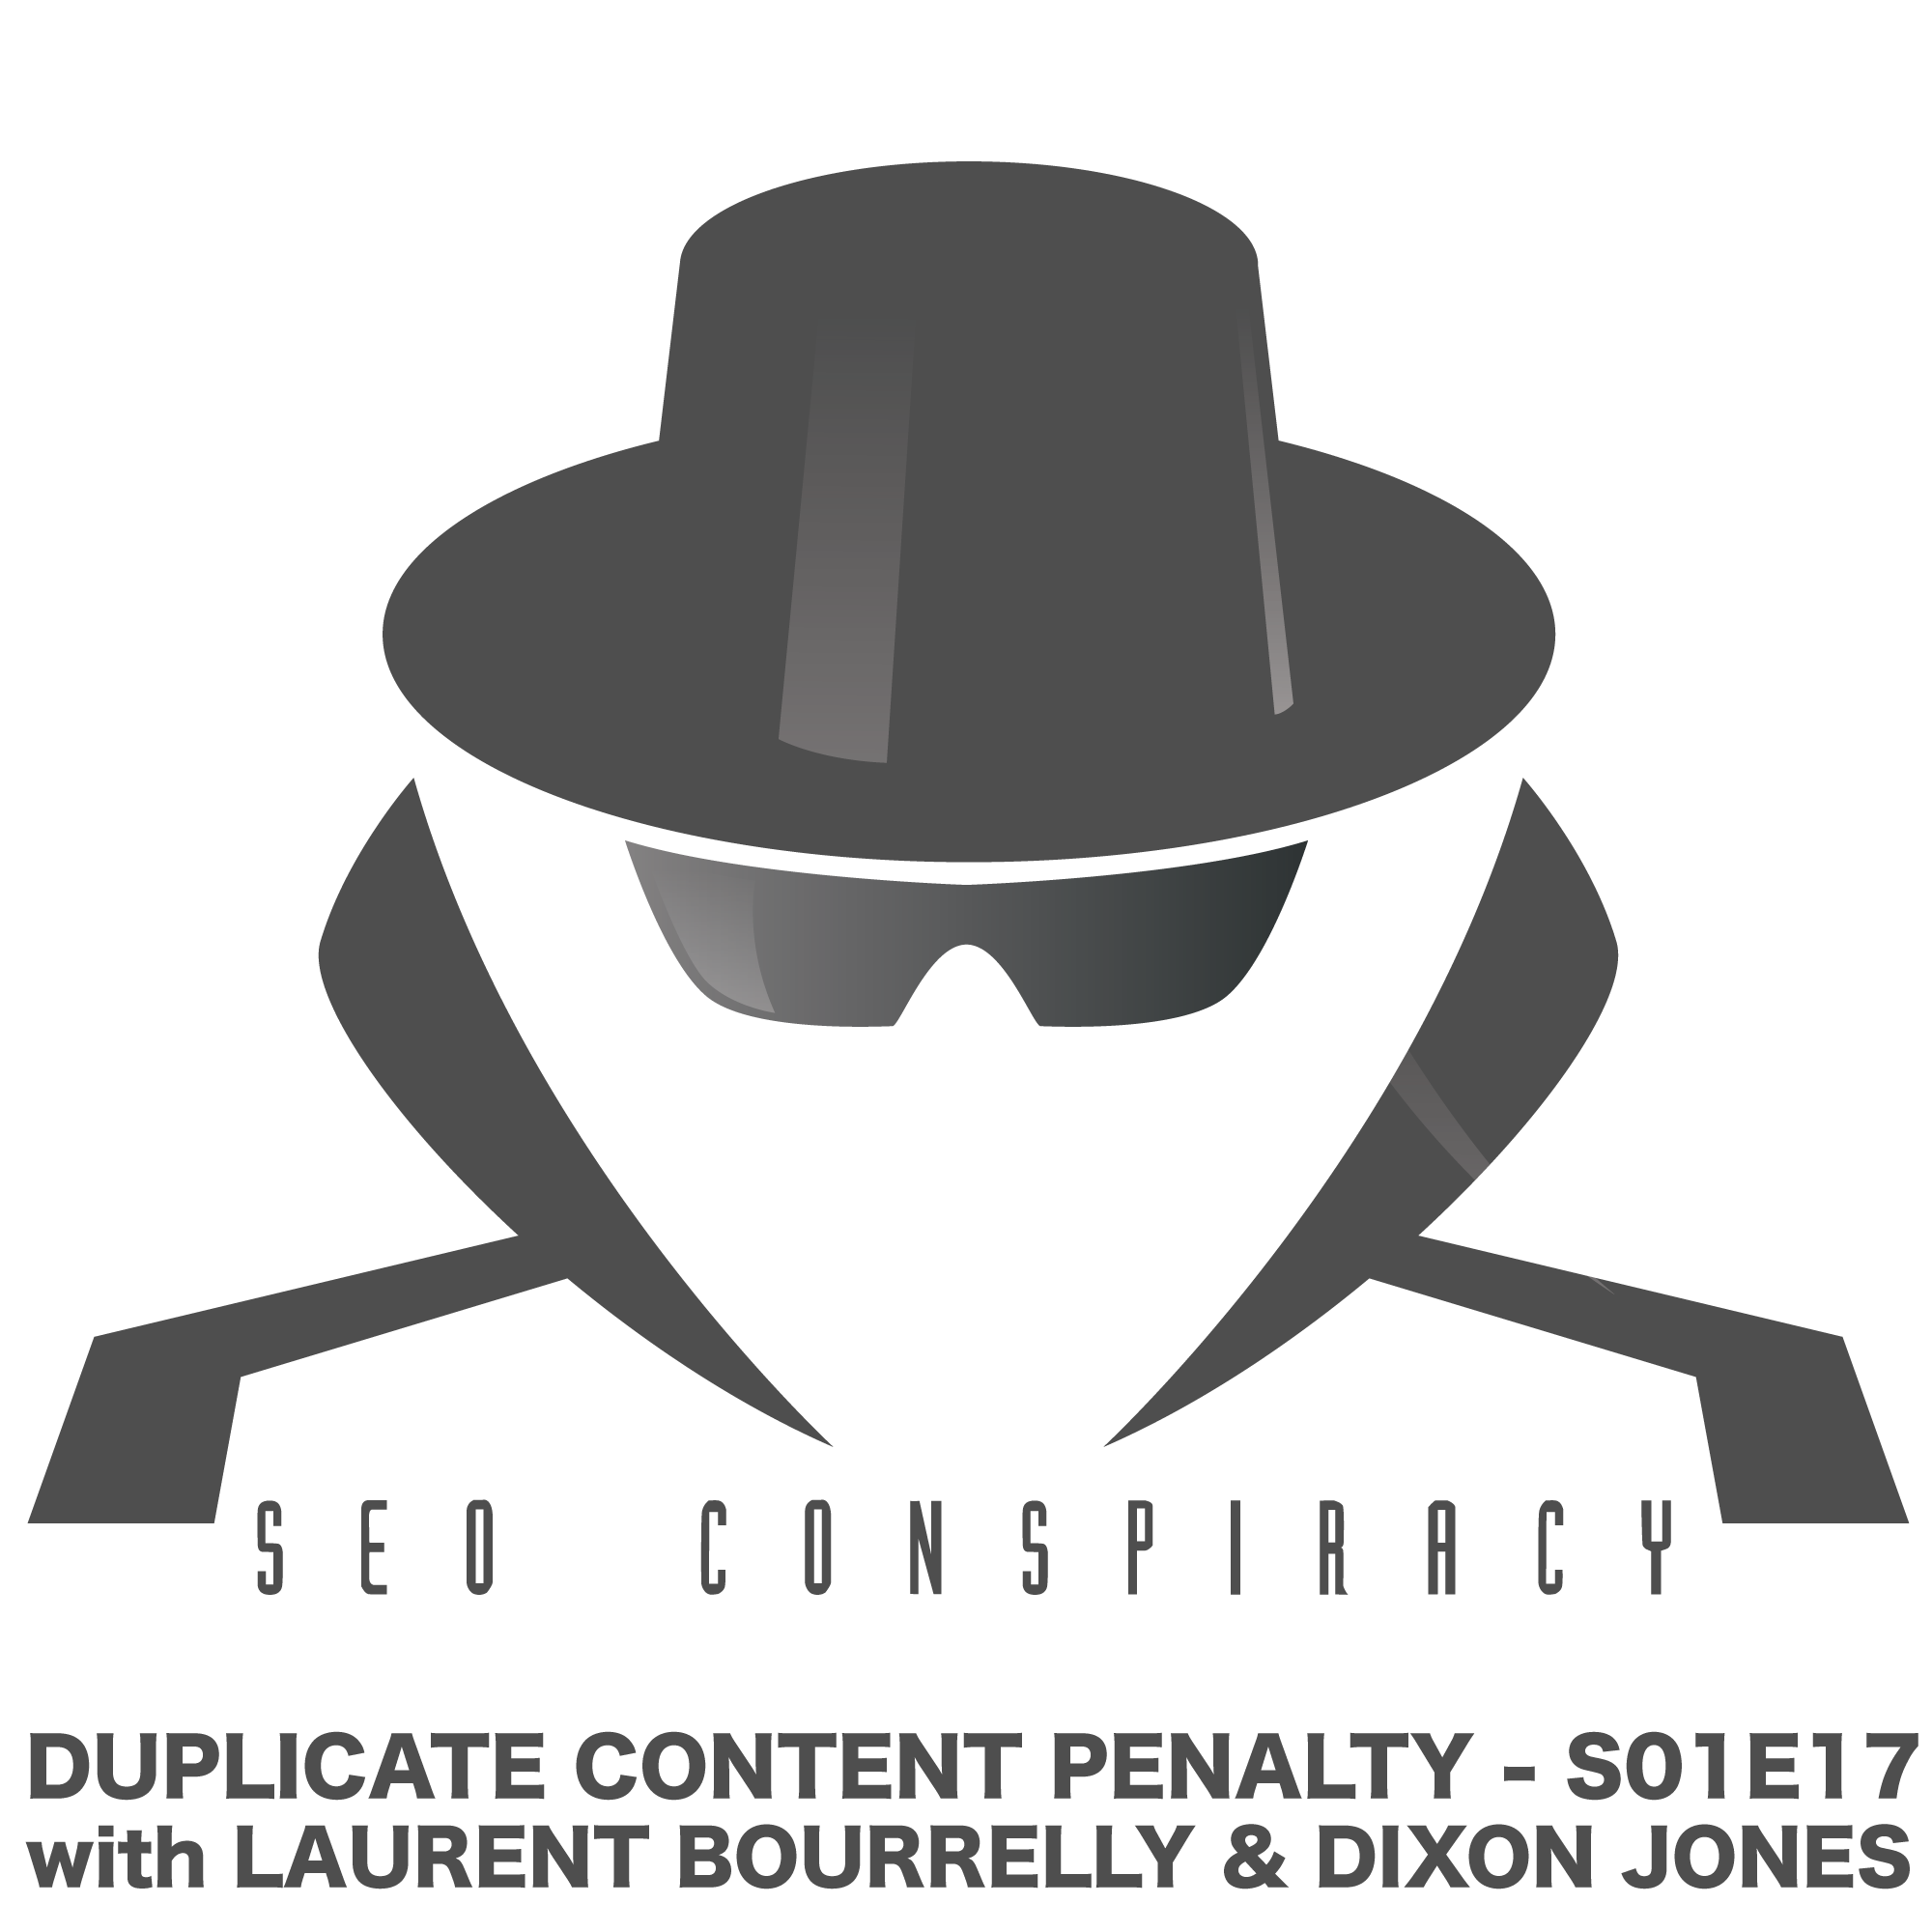 DUPLICATE CONTENT PENALTY IN GOOGLE SEO : Why Is This Myth Still Alive? SEO Conspiracy S01E17